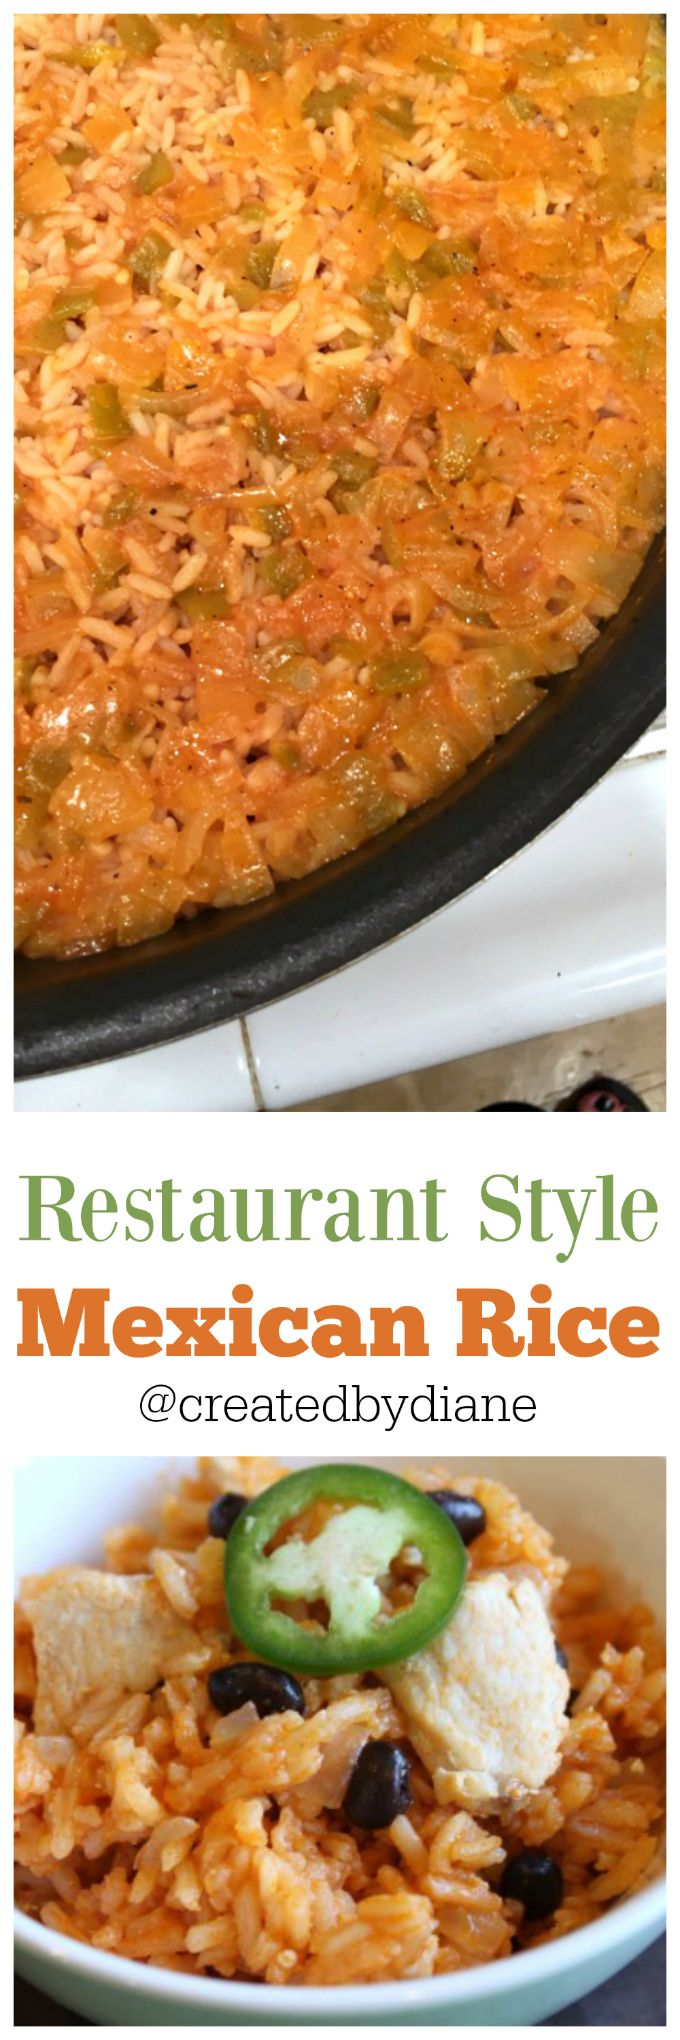 Restaurant style Mexican Rice recipe you can make at home easily and quickly.